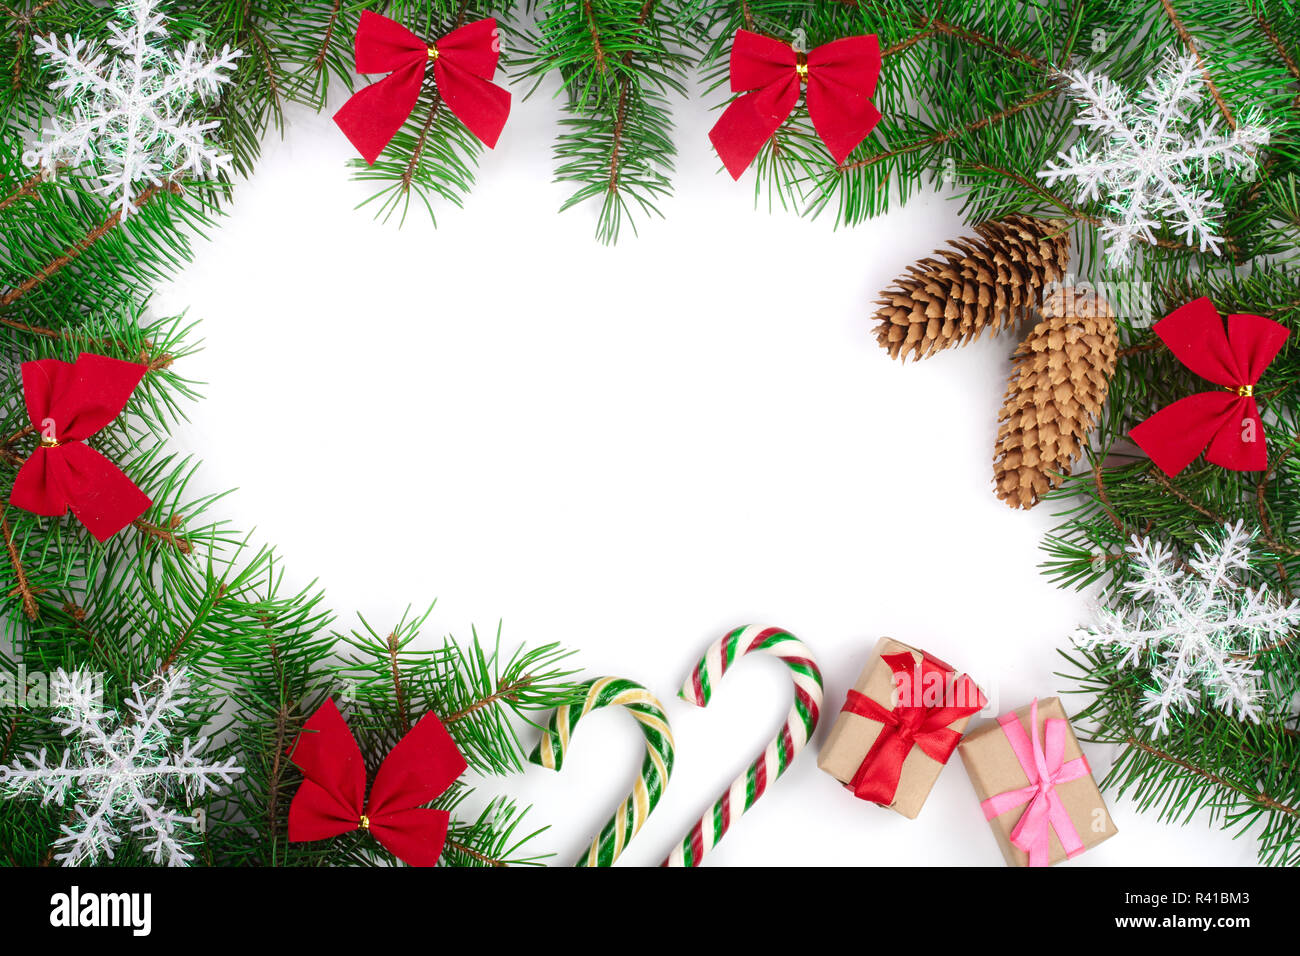 Christmas frame decorated with snowflakes and red bows isolated on white background with copy space for your text - Stock Image